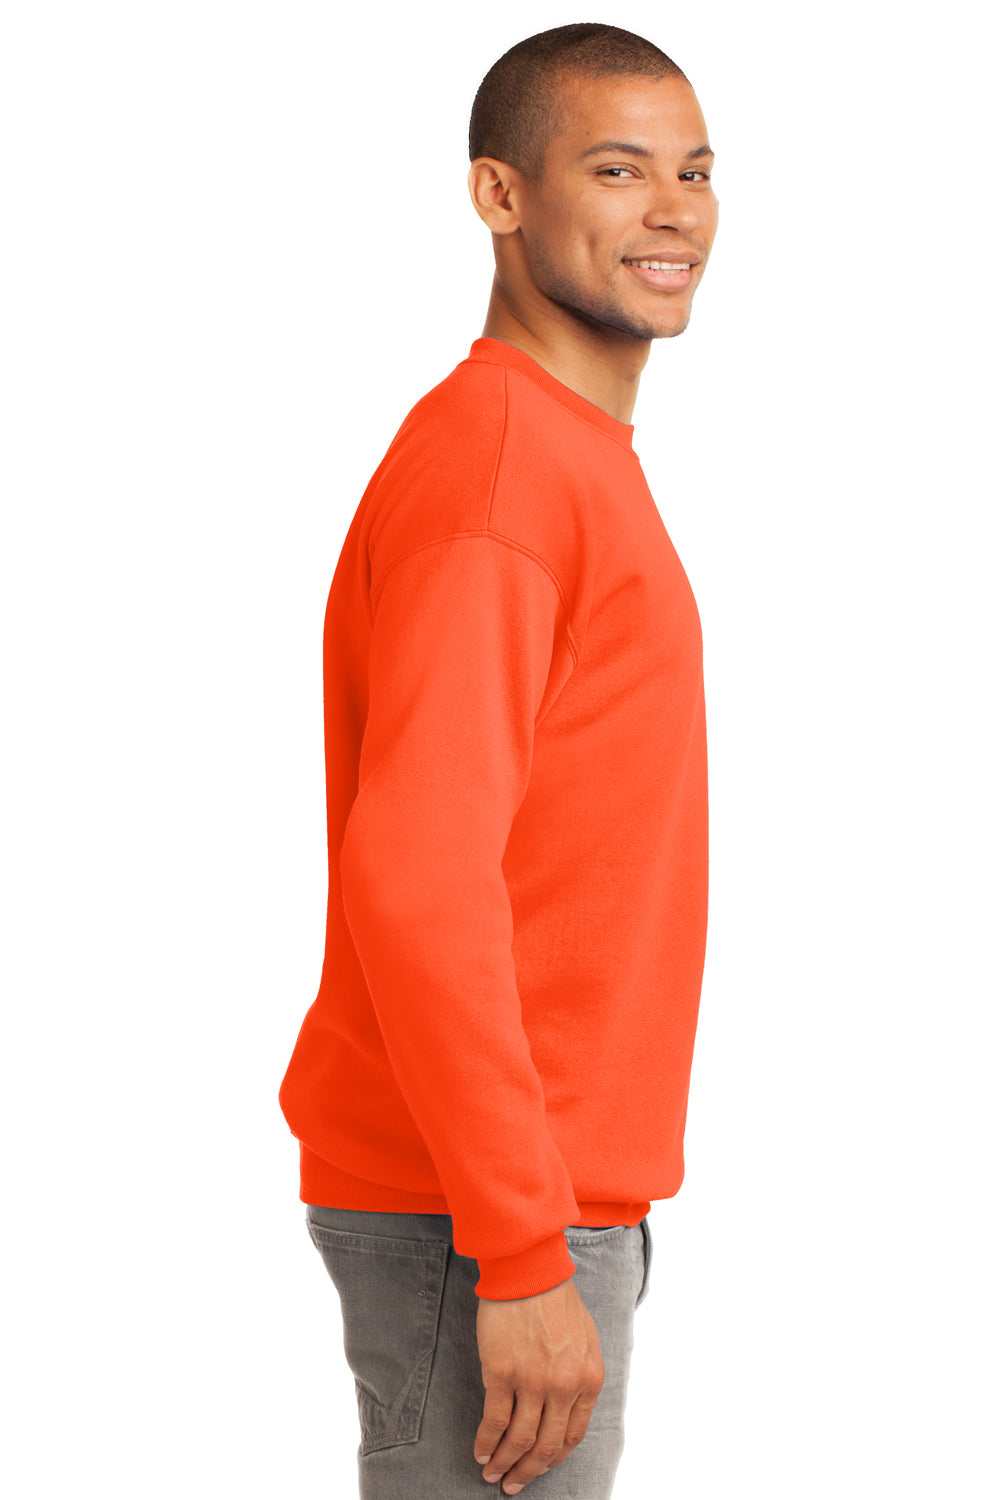 Port & Company PC90 Mens Essential Fleece Crewneck Sweatshirt Safety Orange Side